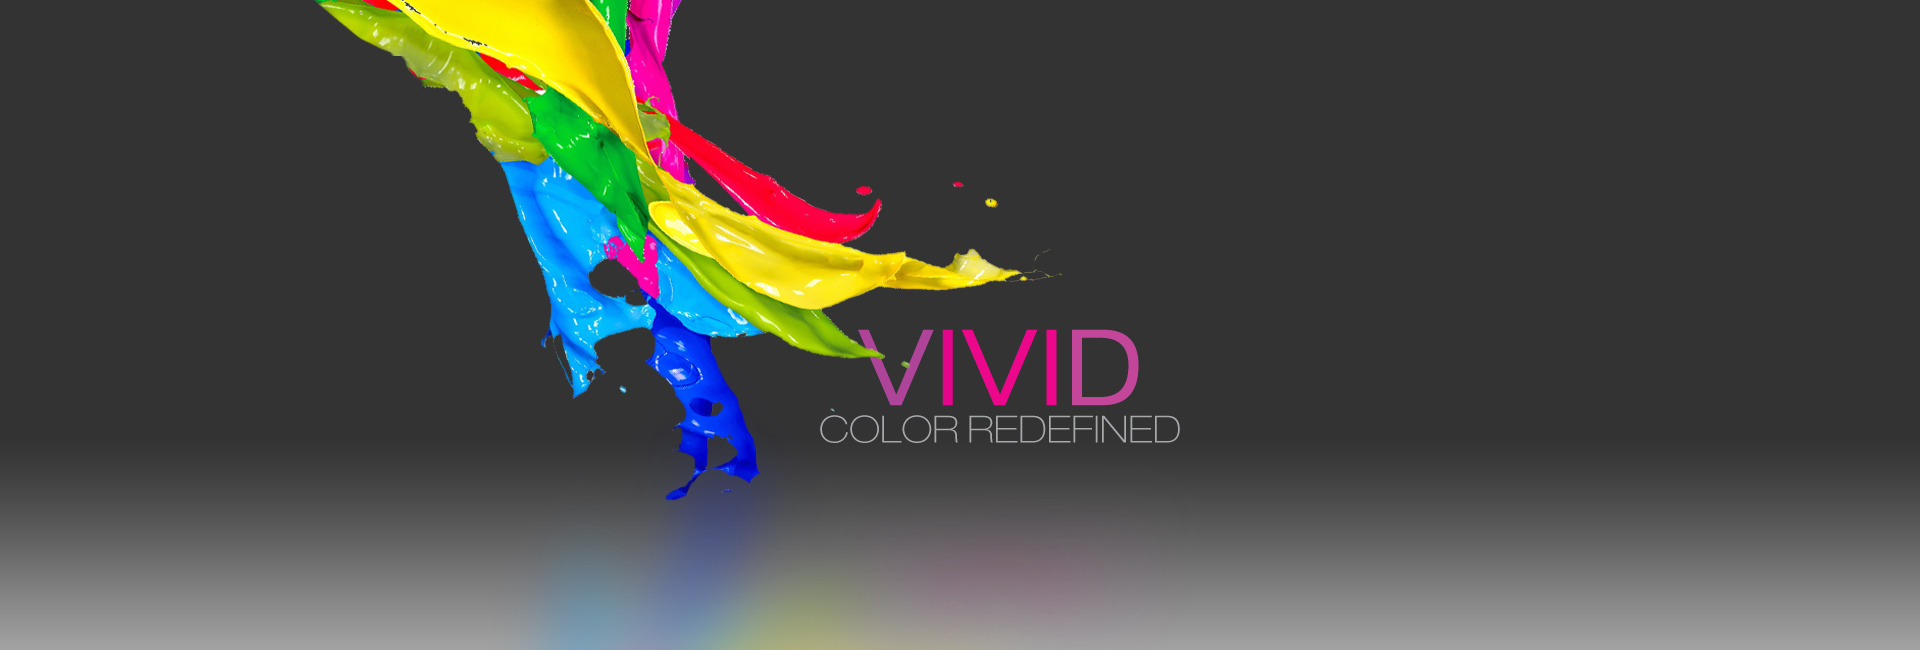 VIVID Colour Technology